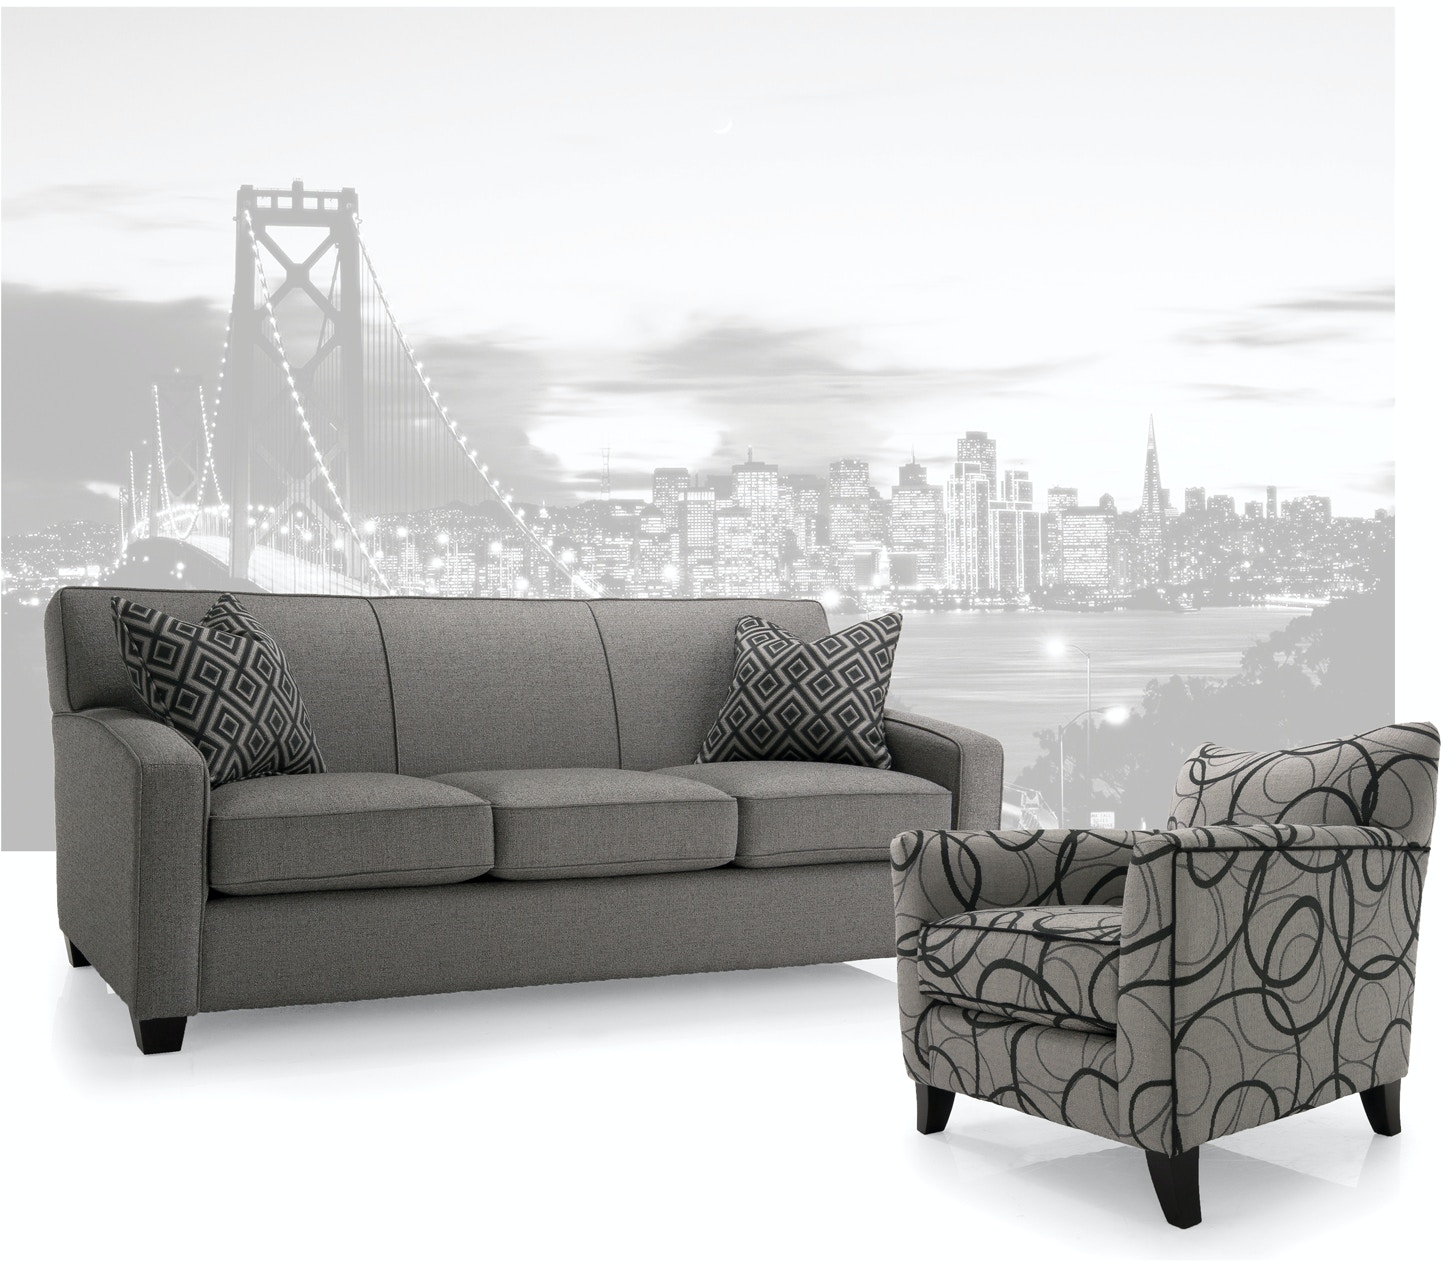 Decor Rest Sofa With Pillows 382248 Talsma Furniture Hudsonville